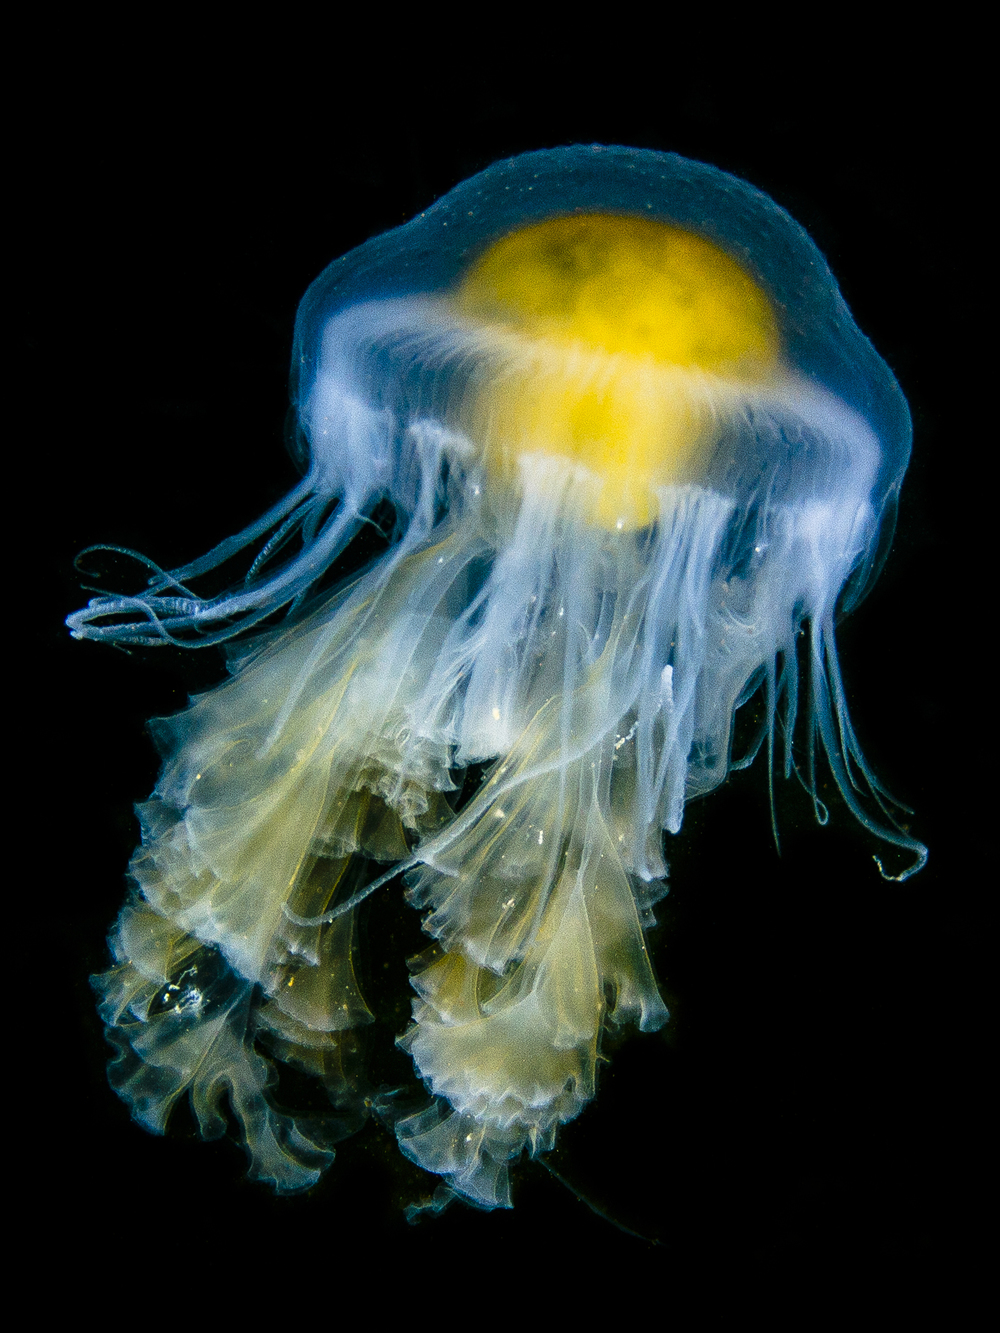 Egg-yolk Jelly 5x7.jpg